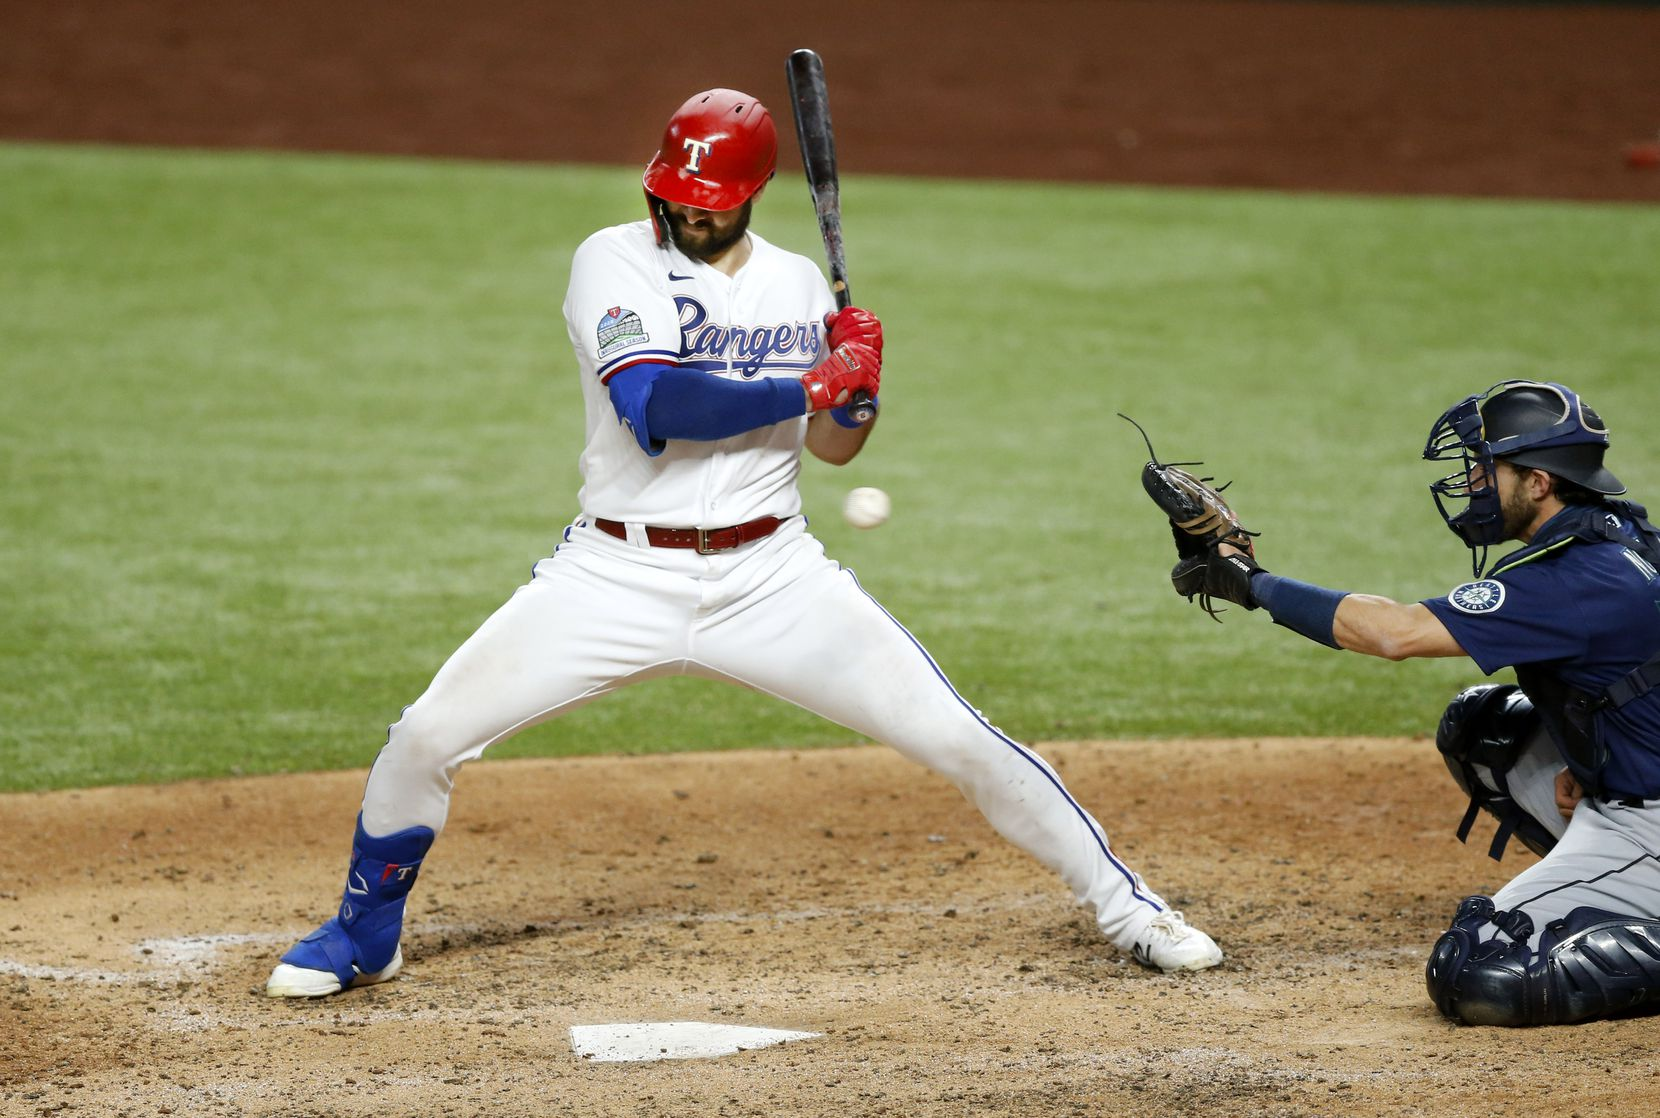 Texas Rangers center fielder Joey Gallo (13) leans back from an inside pitch by Seattle Mariners starting pitcher Marco Gonzales (7) in the fifth inning at Globe Life Field in Arlington, Tuesday, August 11, 2020. The pitch drew walk.